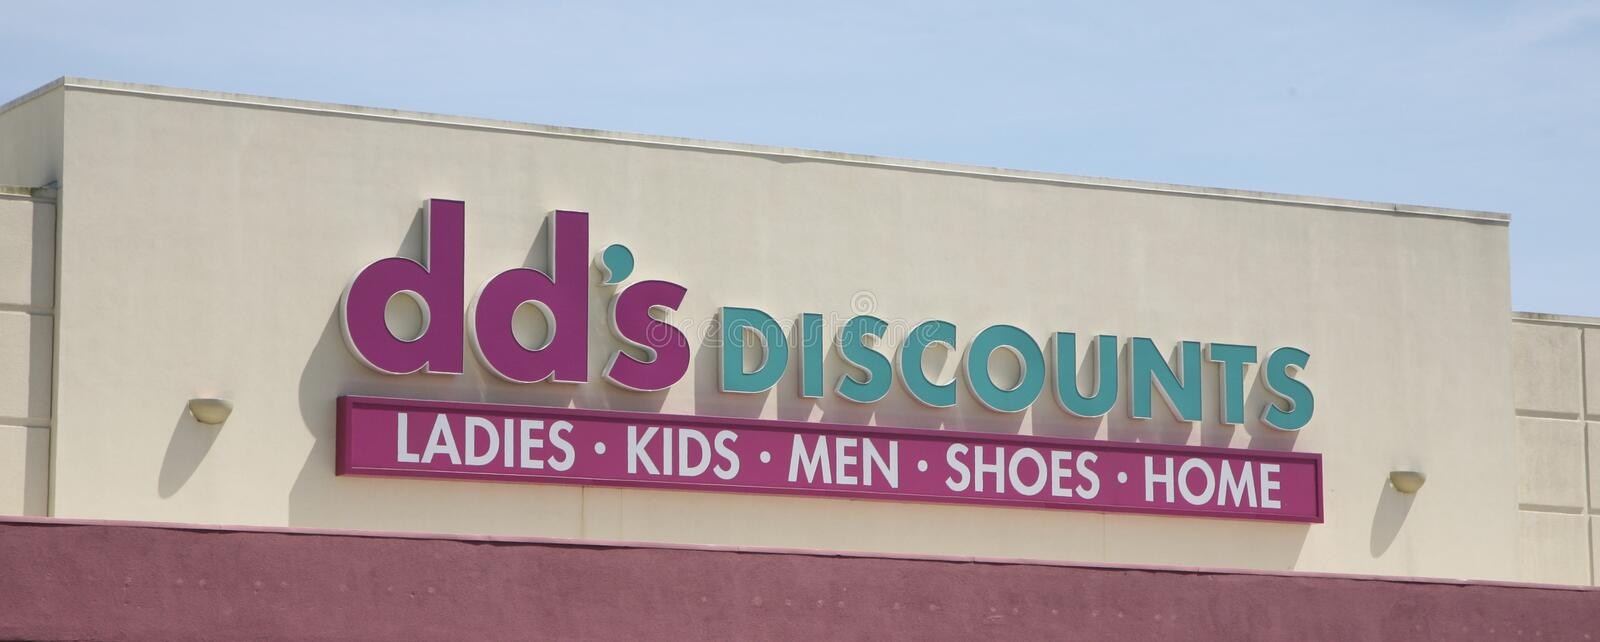 Dd`s Discount Department Store. Dd`s discounts department stores are stocked with home apparel, shoes & accessories for women, children and men royalty free stock images